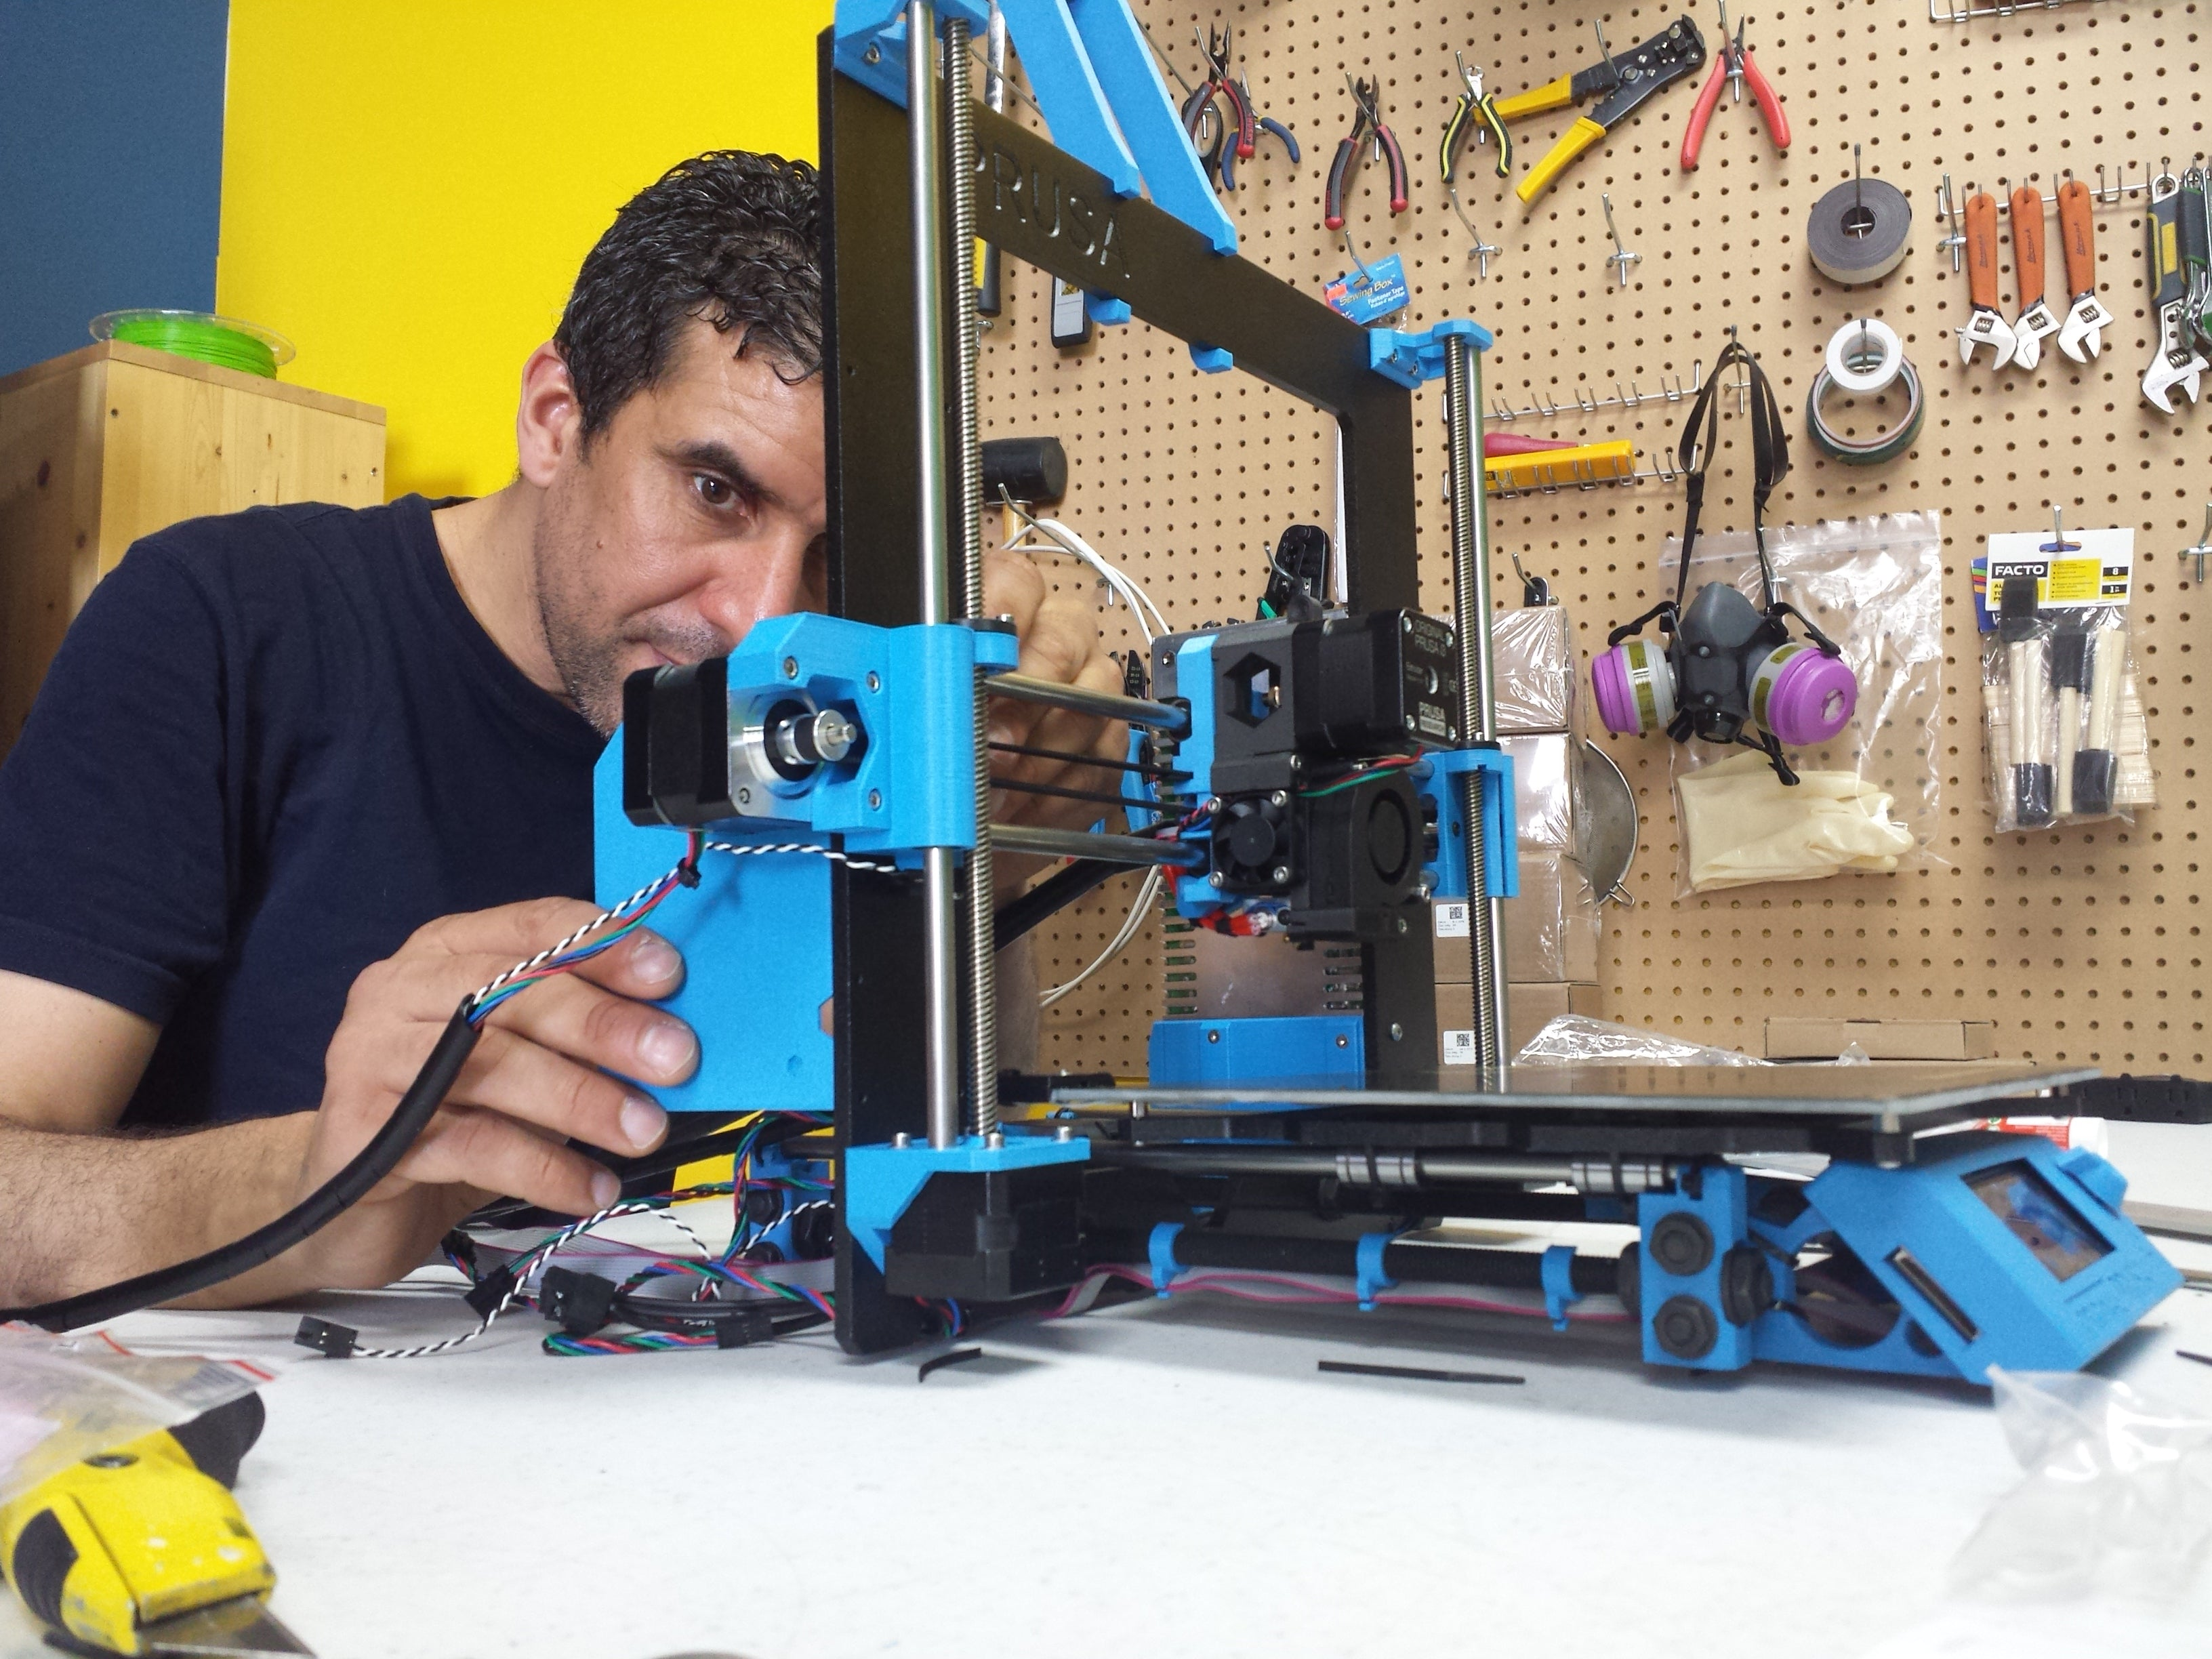 Picture of Voxel Factory assembling a Prusa i3 MK2 3D Printer